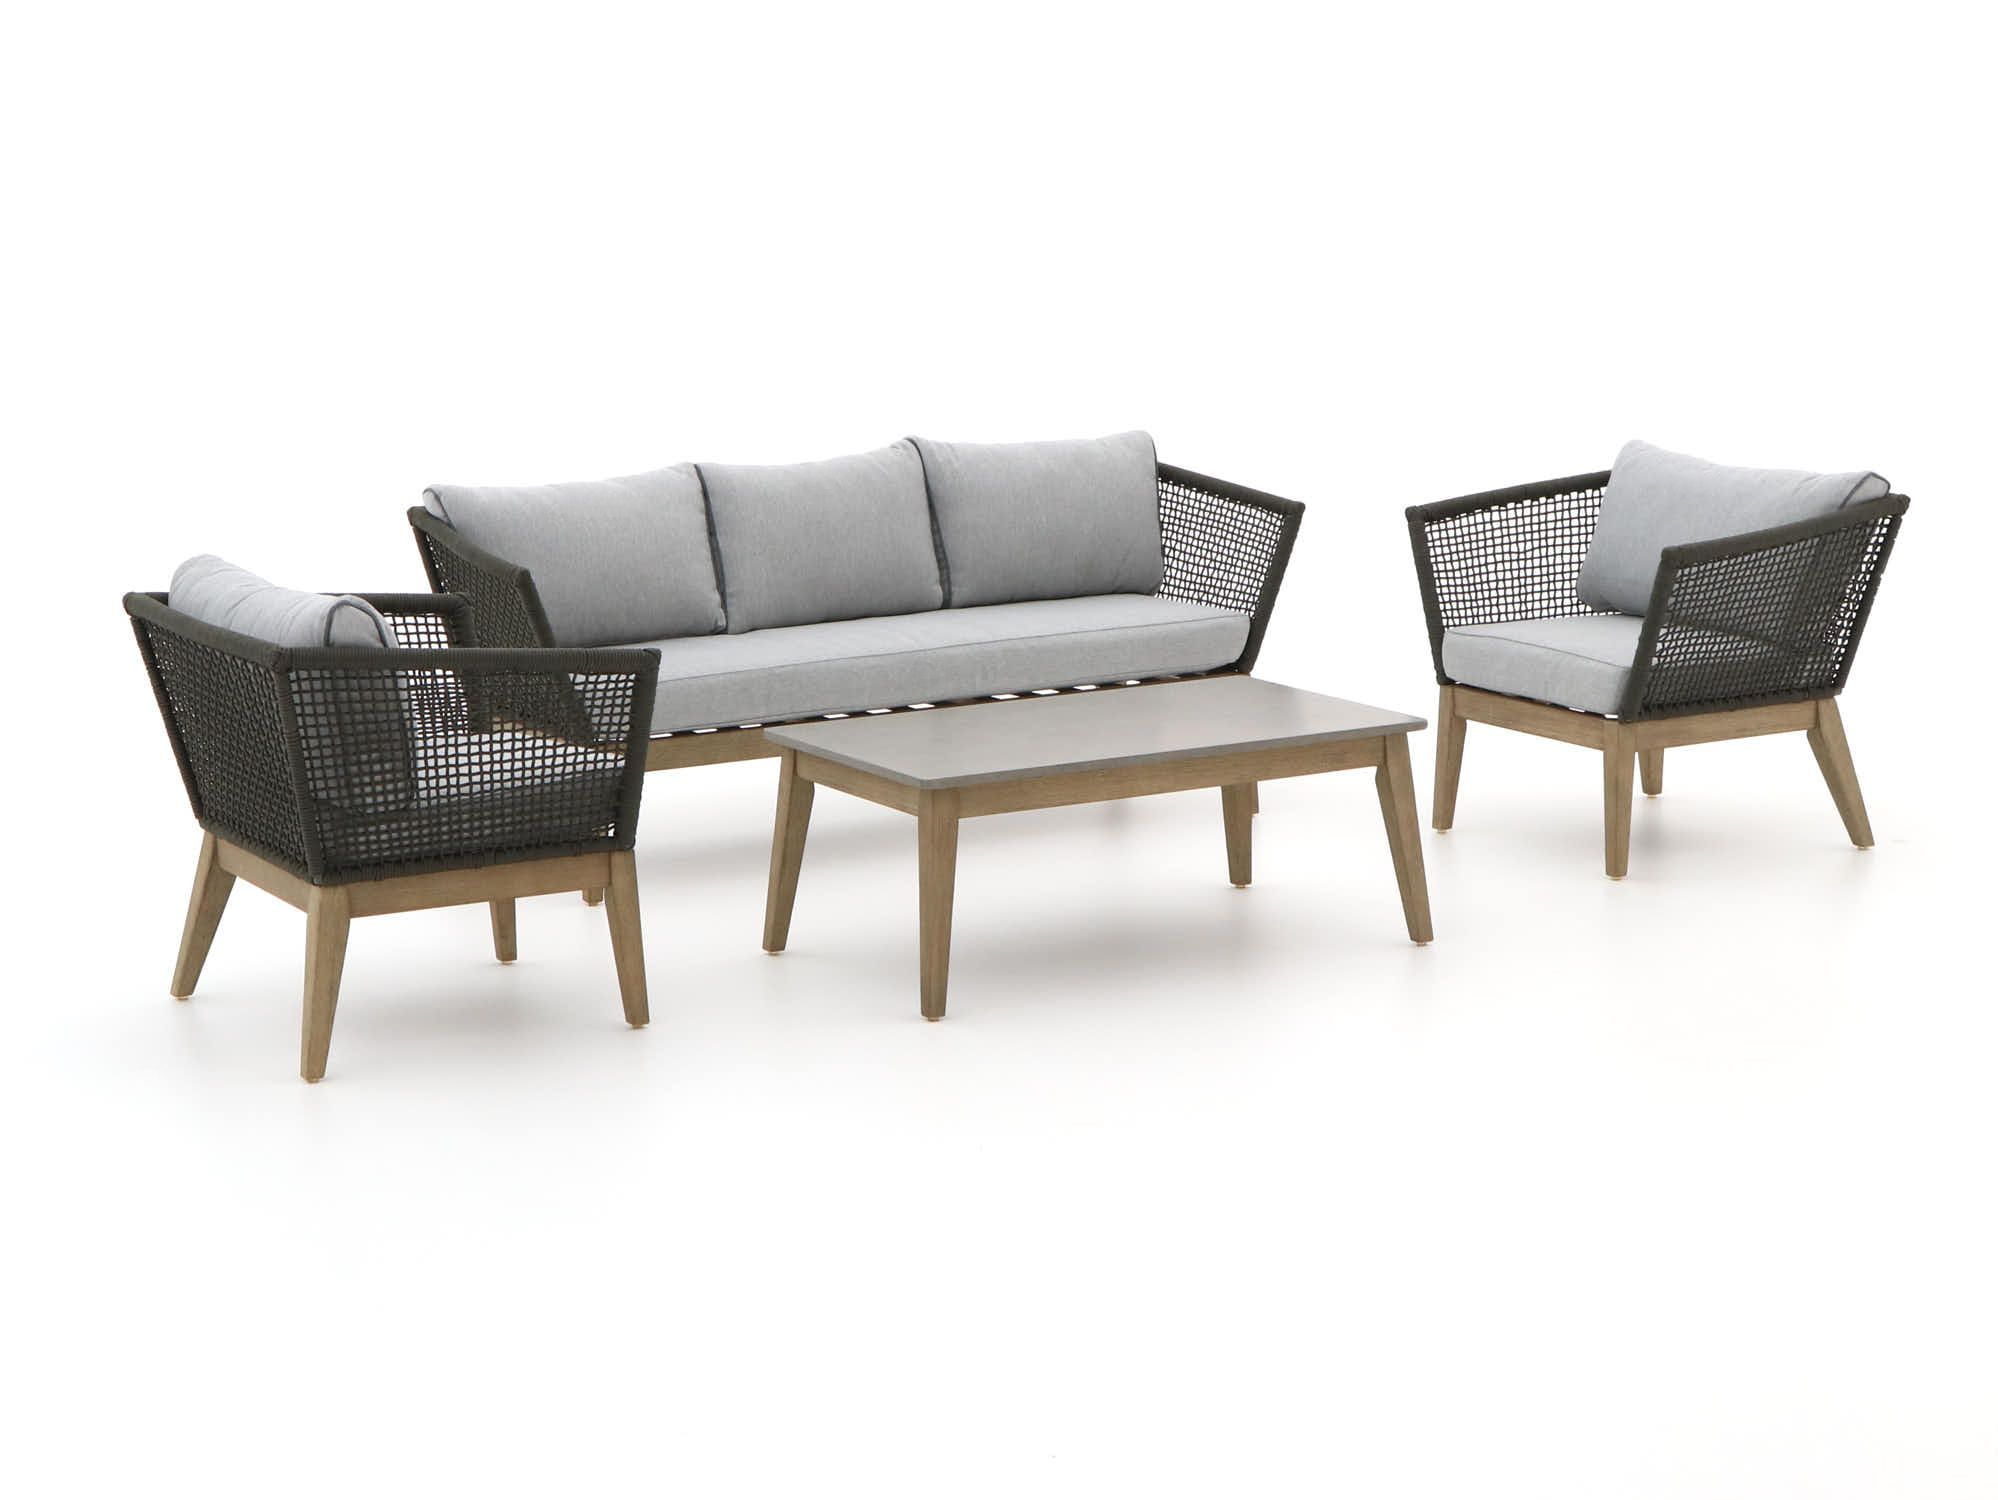 Kees Smit Loungeset.Intenso Borbona Stoel Bank Loungeset 4 Delig Garden Ideas